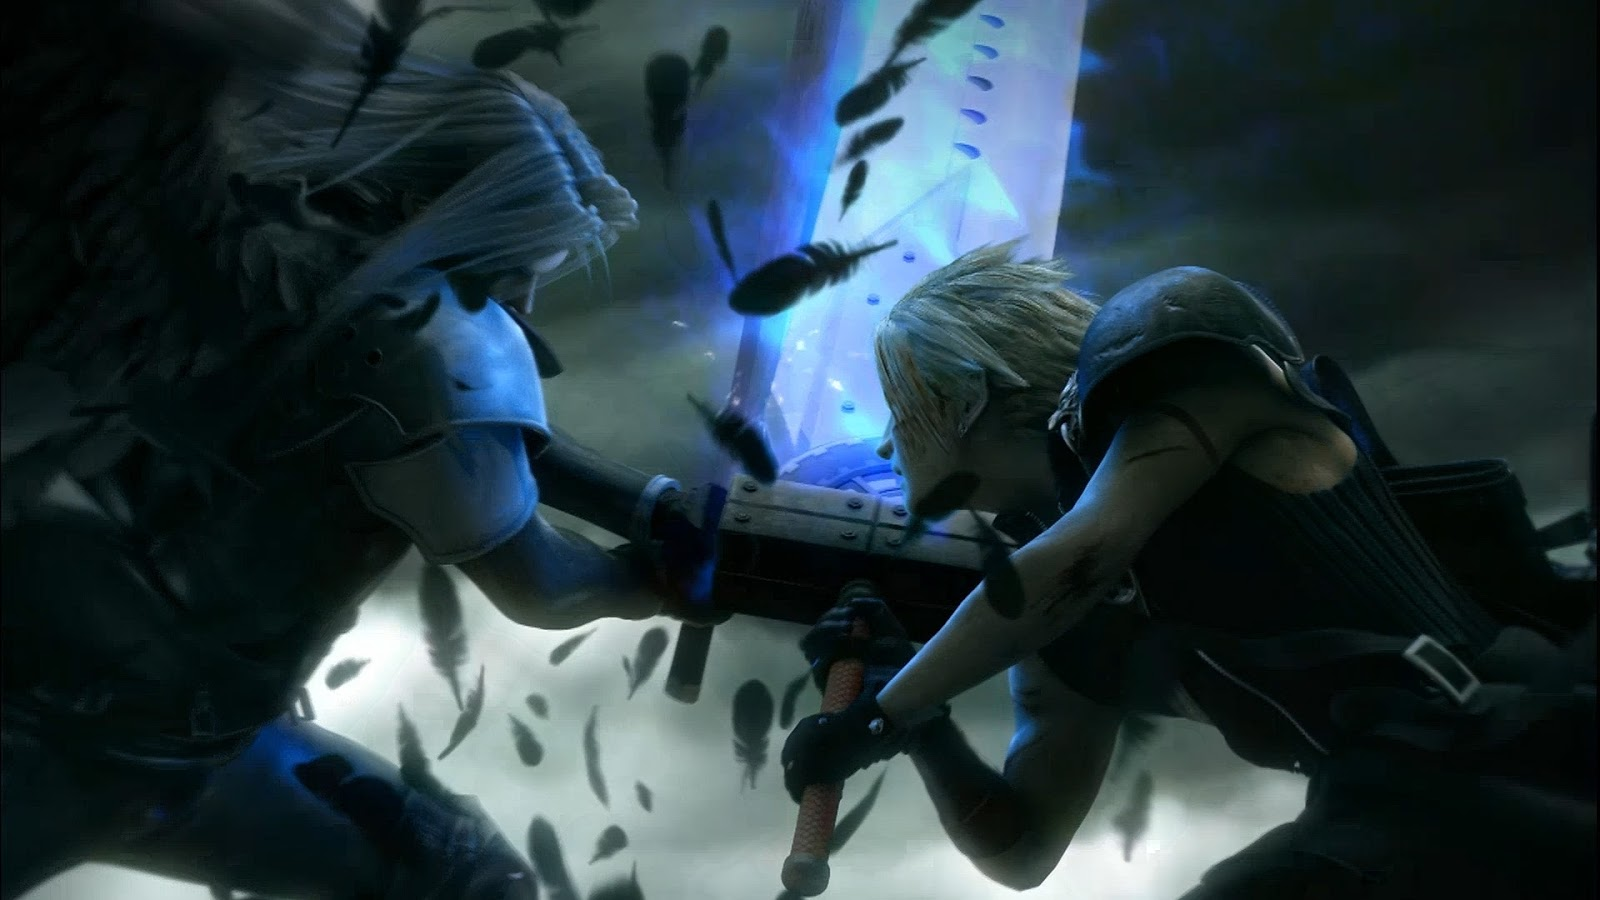 Final Fantasy VII Advent Children: Sephiroth vs Cloud Strife